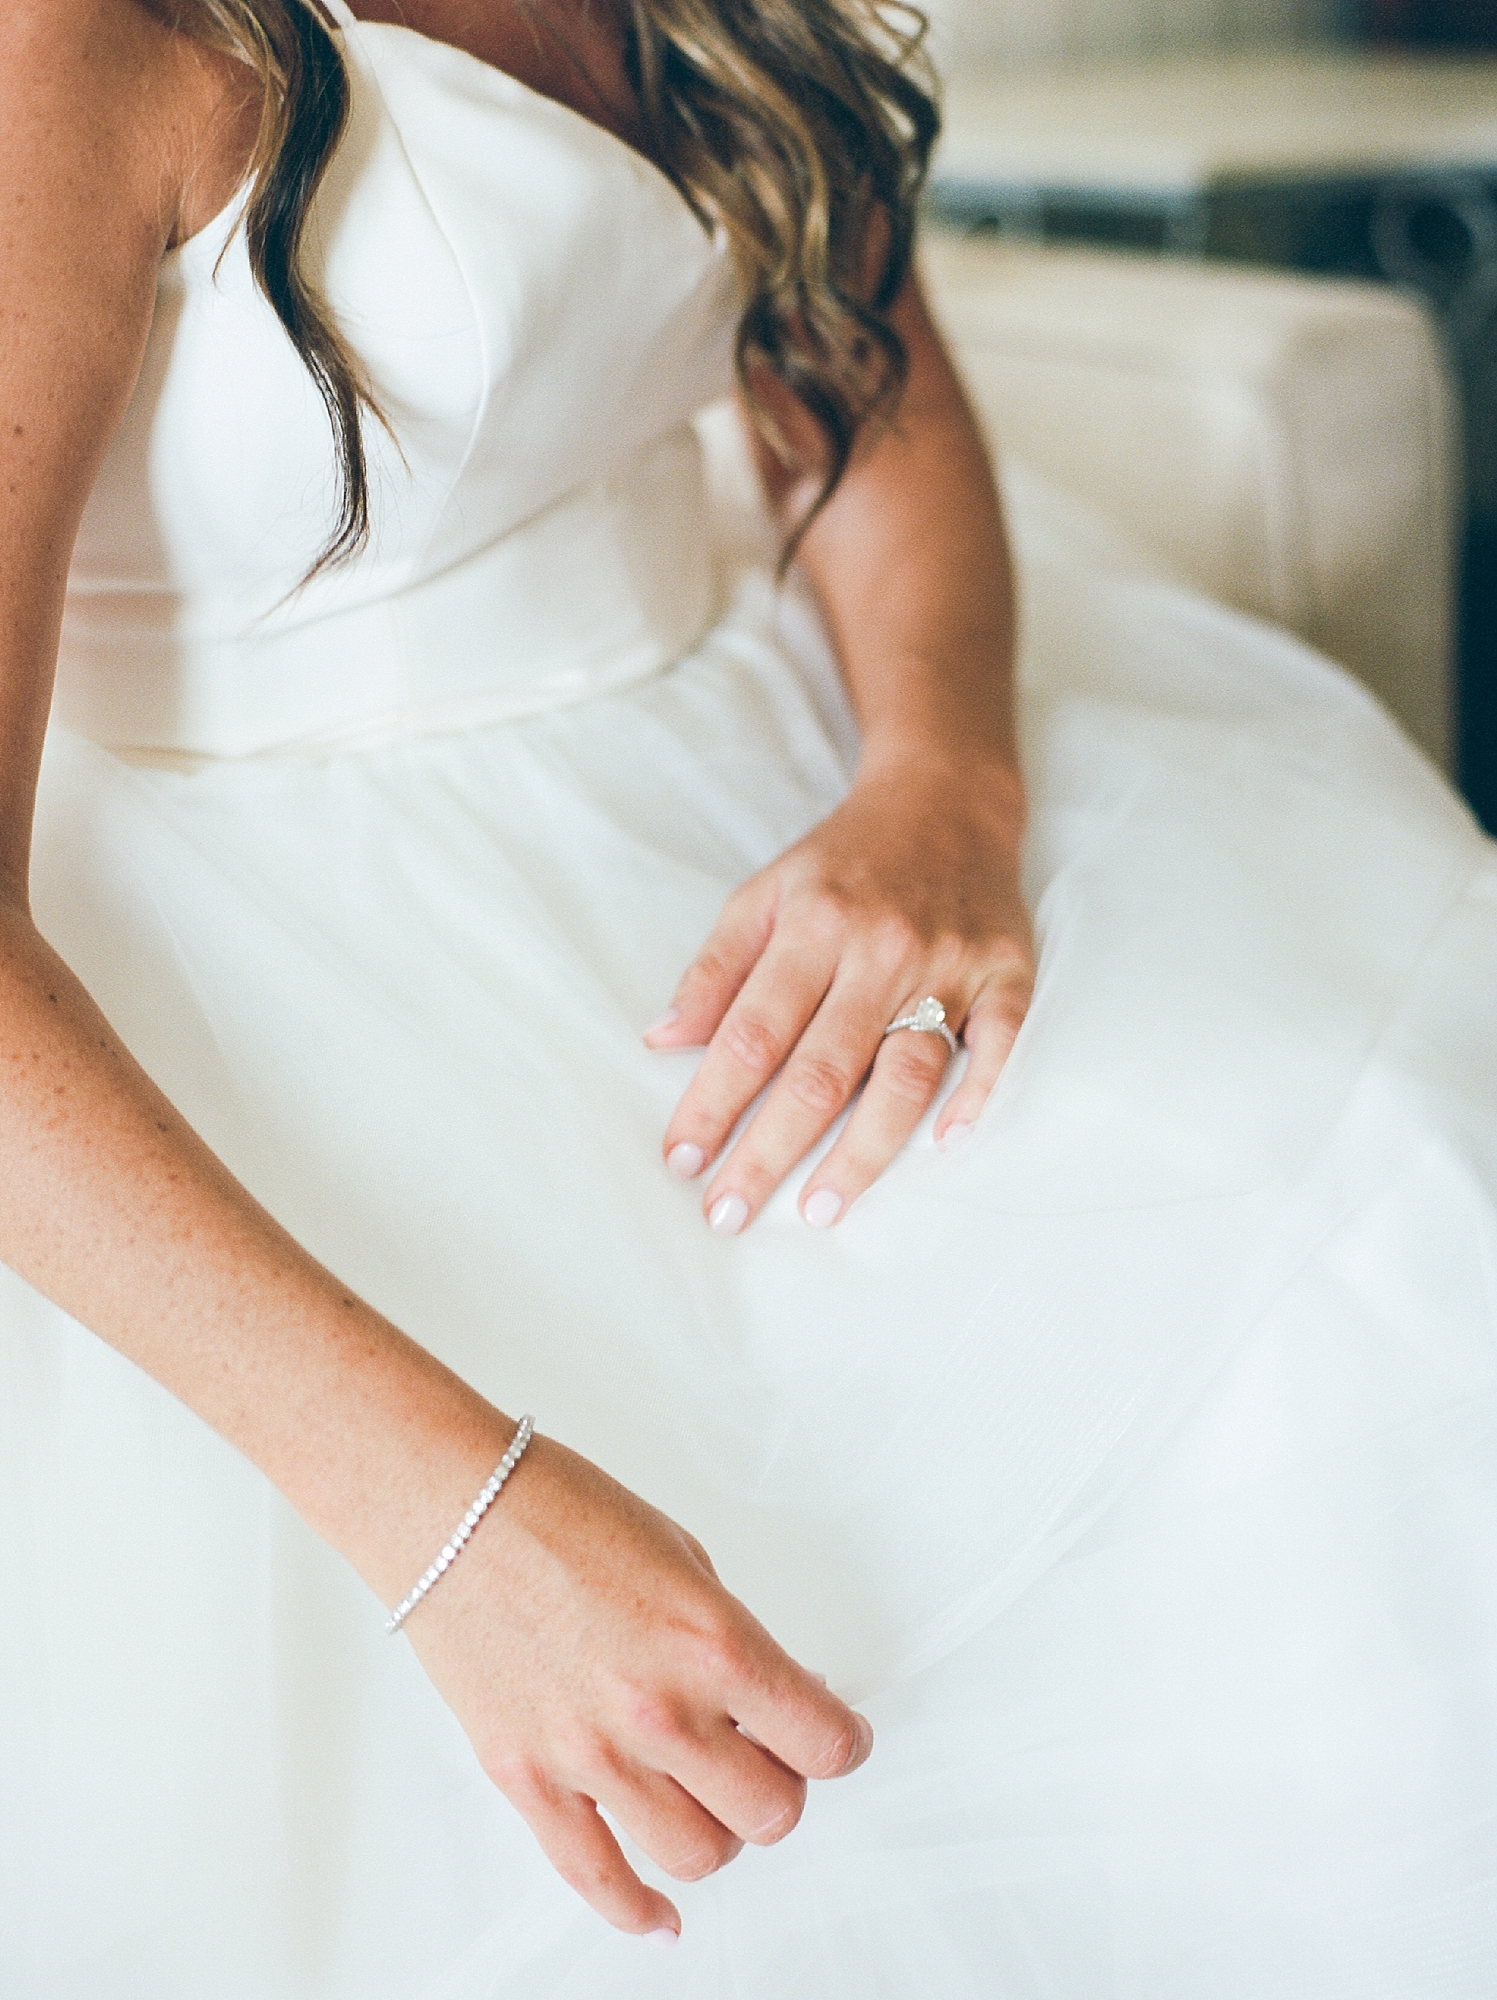 Coastal and Authentic Film Wedding Photography in Newport Rhode Island by Magdalena Studios 0011